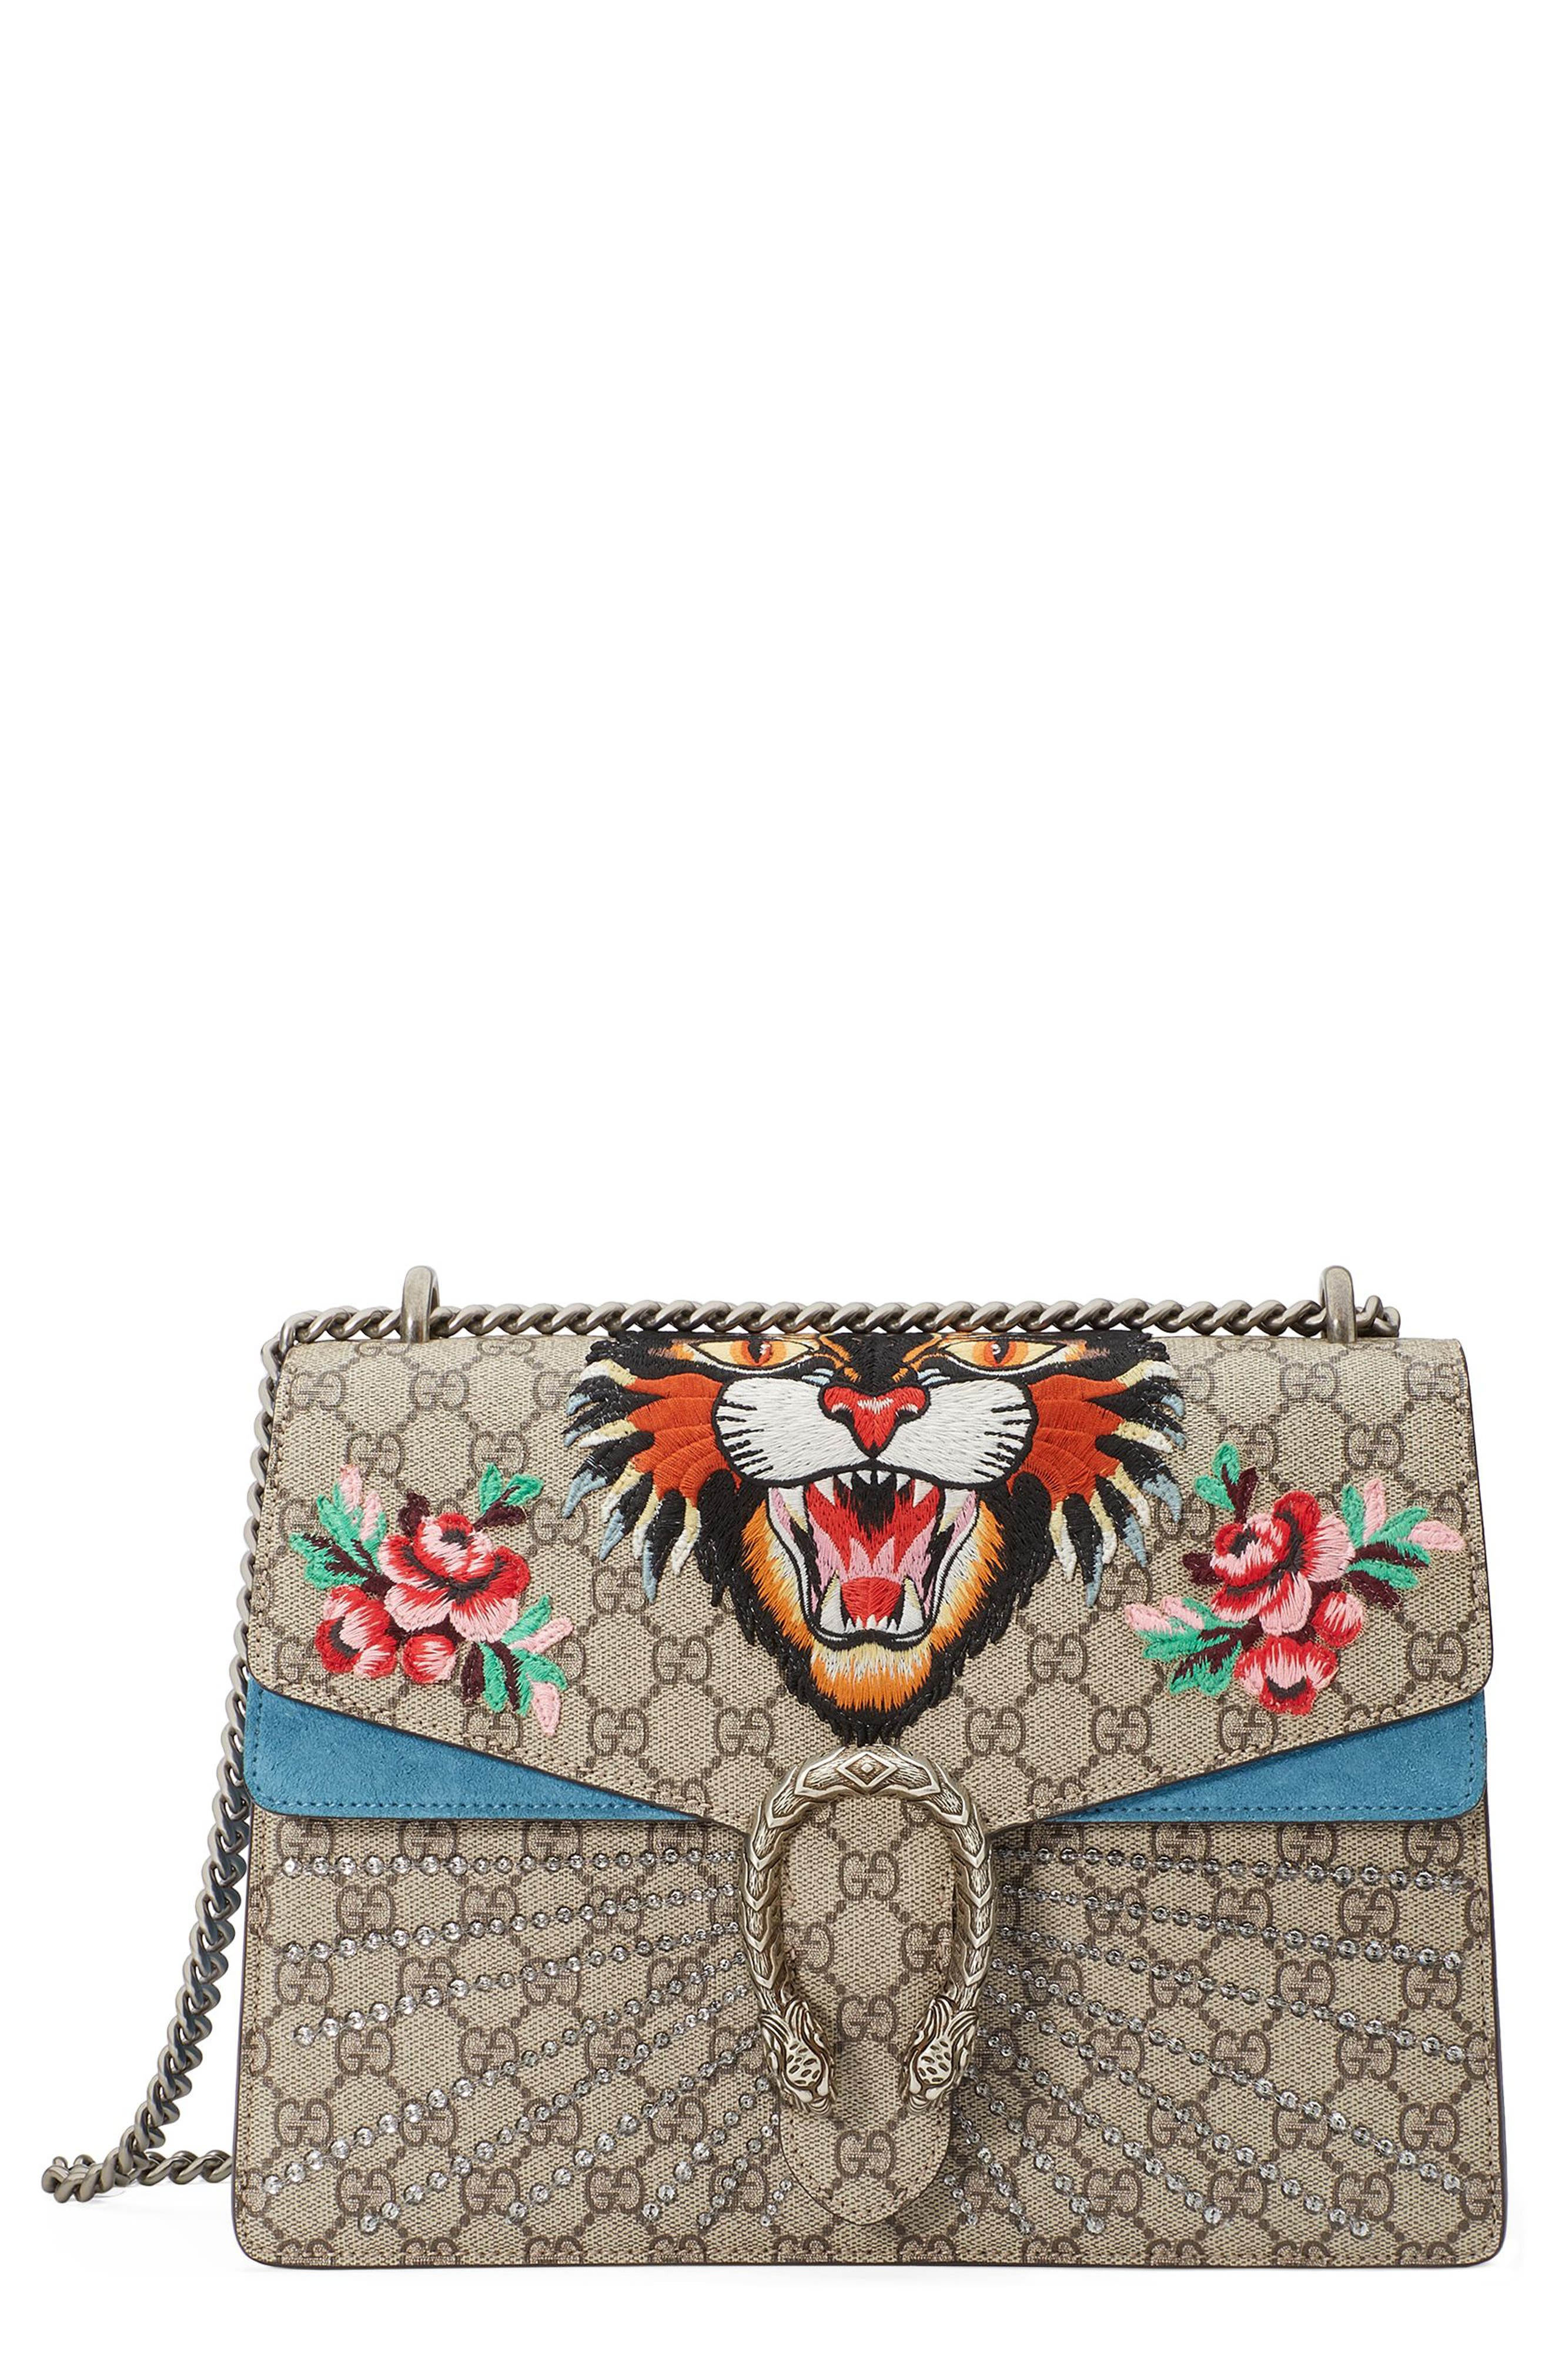 Alternate Image 1 Selected - Gucci Medium Angry Cat GG Supreme Canvas & Suede Shoulder Bag